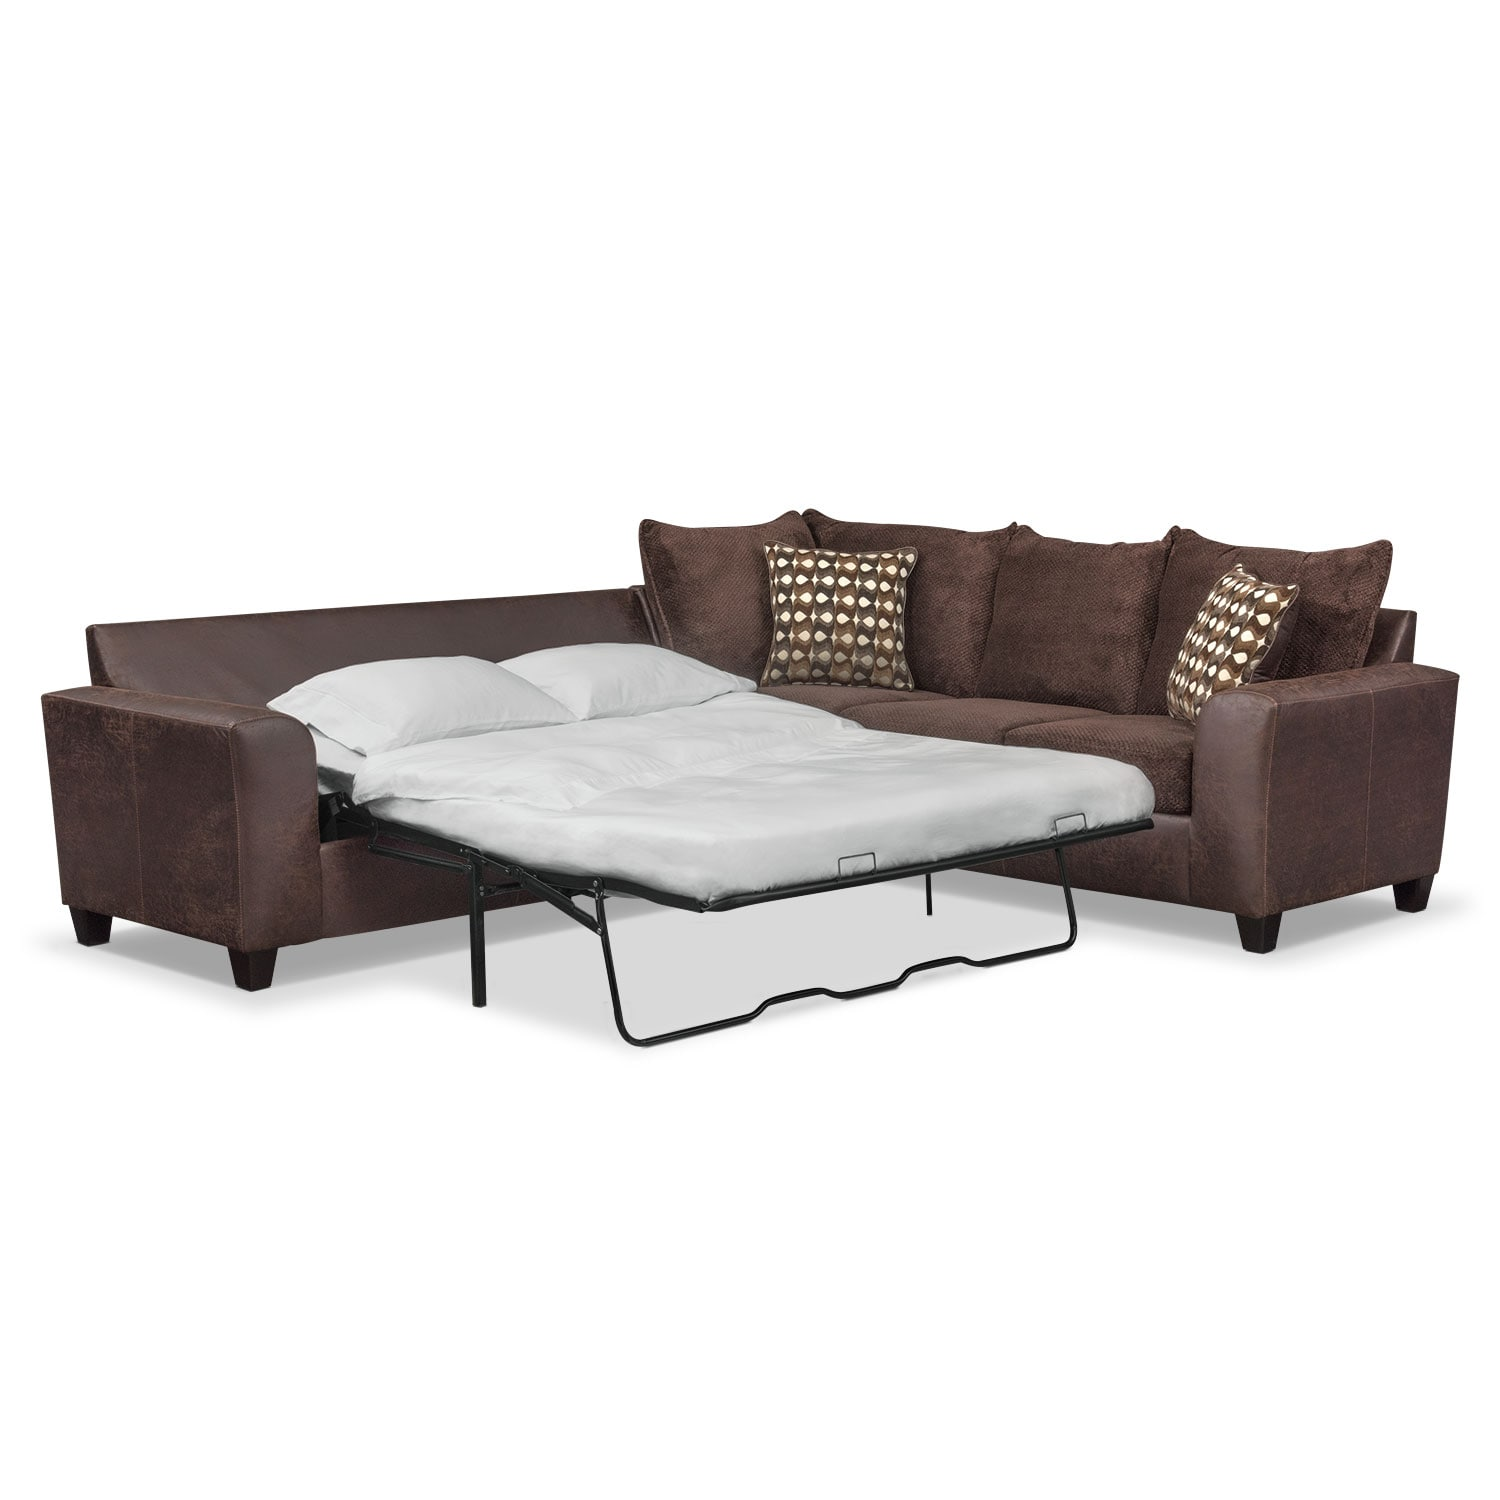 Living Room Furniture - Brando 2-Piece Memory Foam Sleeper Sectional - Chocolate